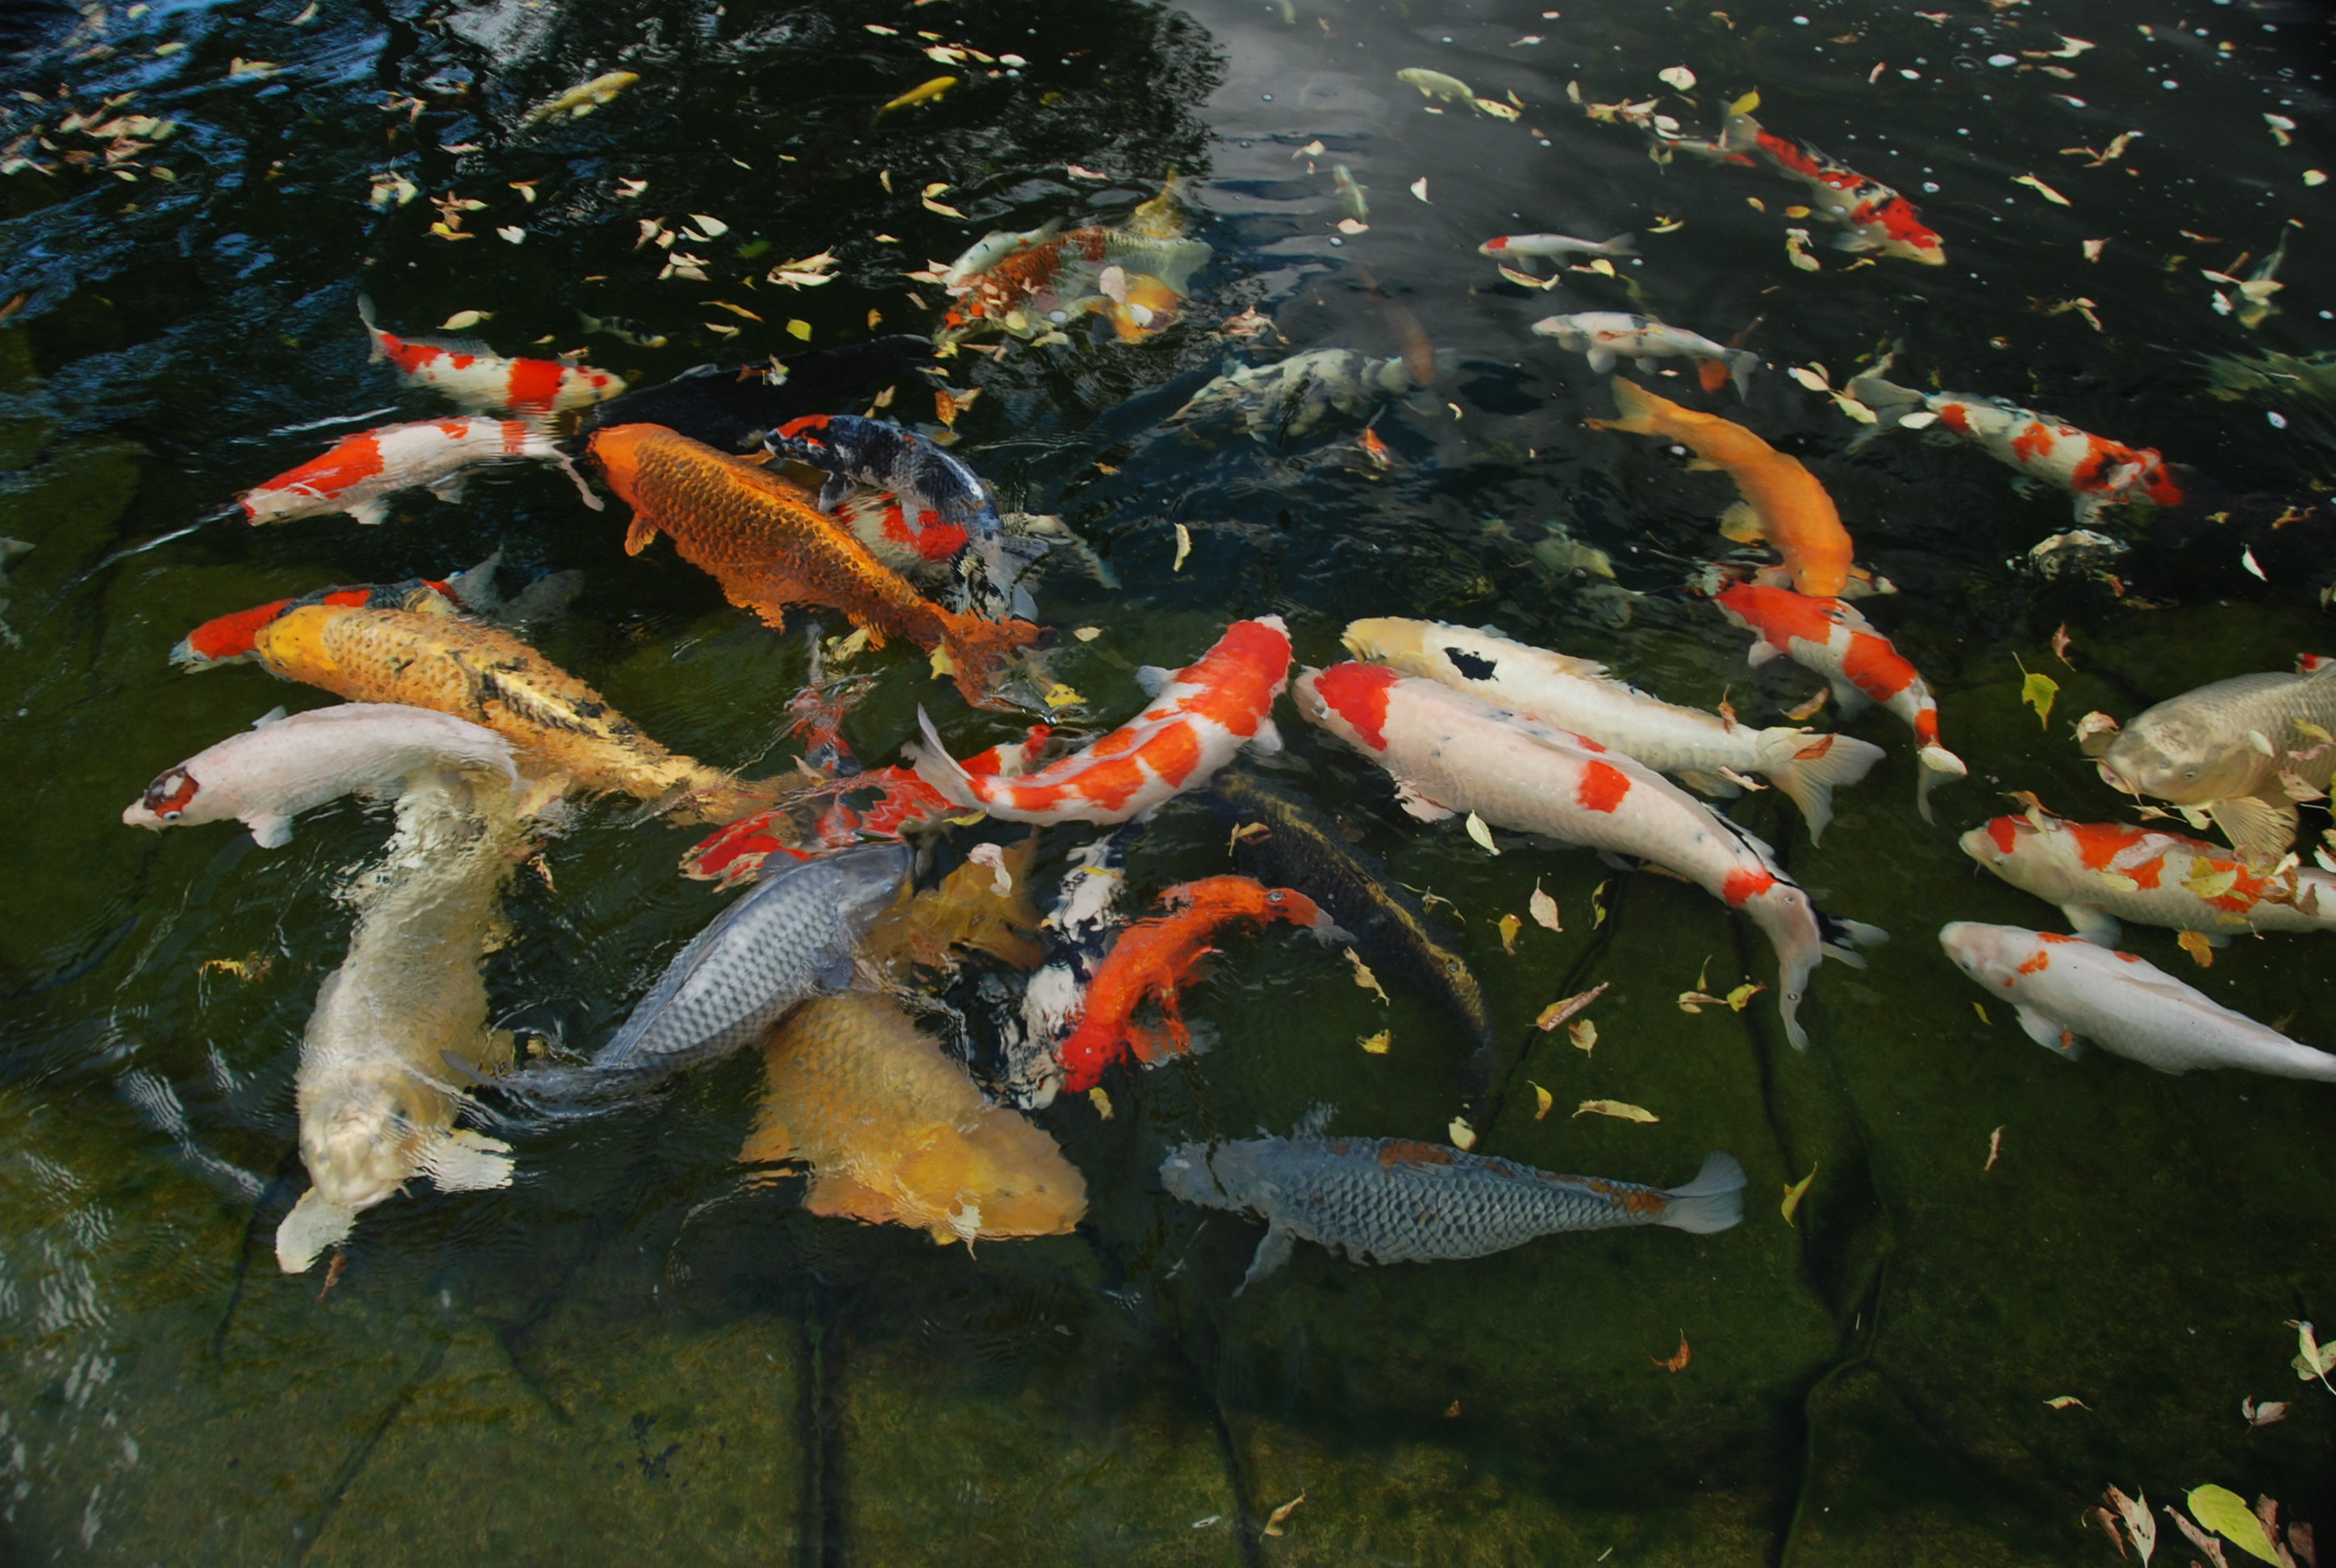 Koi acres imported japanese koi online shopping for koi for Koi pond supply of japan